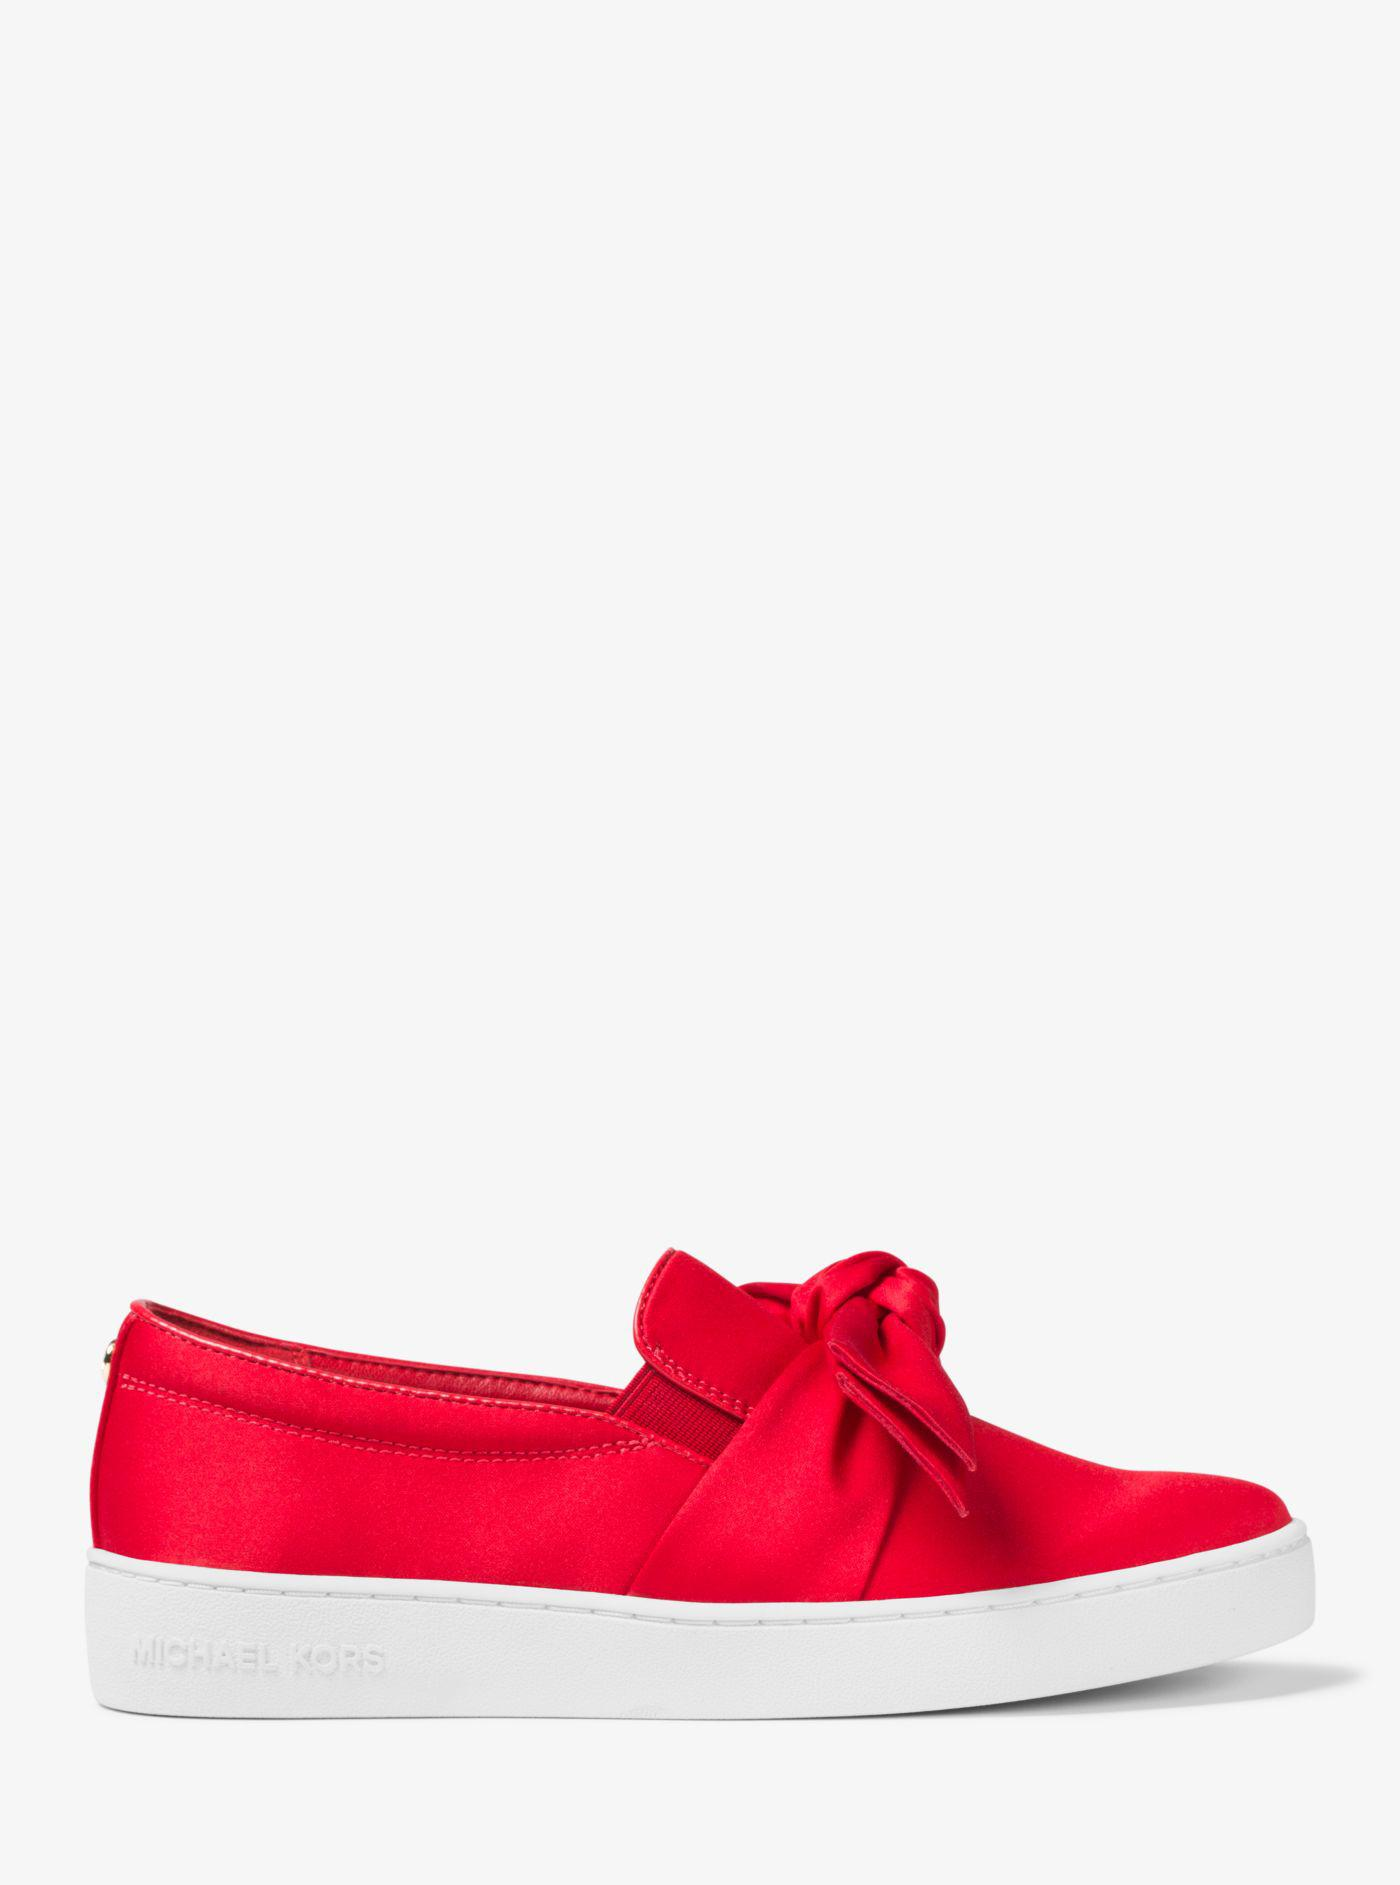 Read more Red Satin Bow Slip-On Sneakers wmfsh0yW